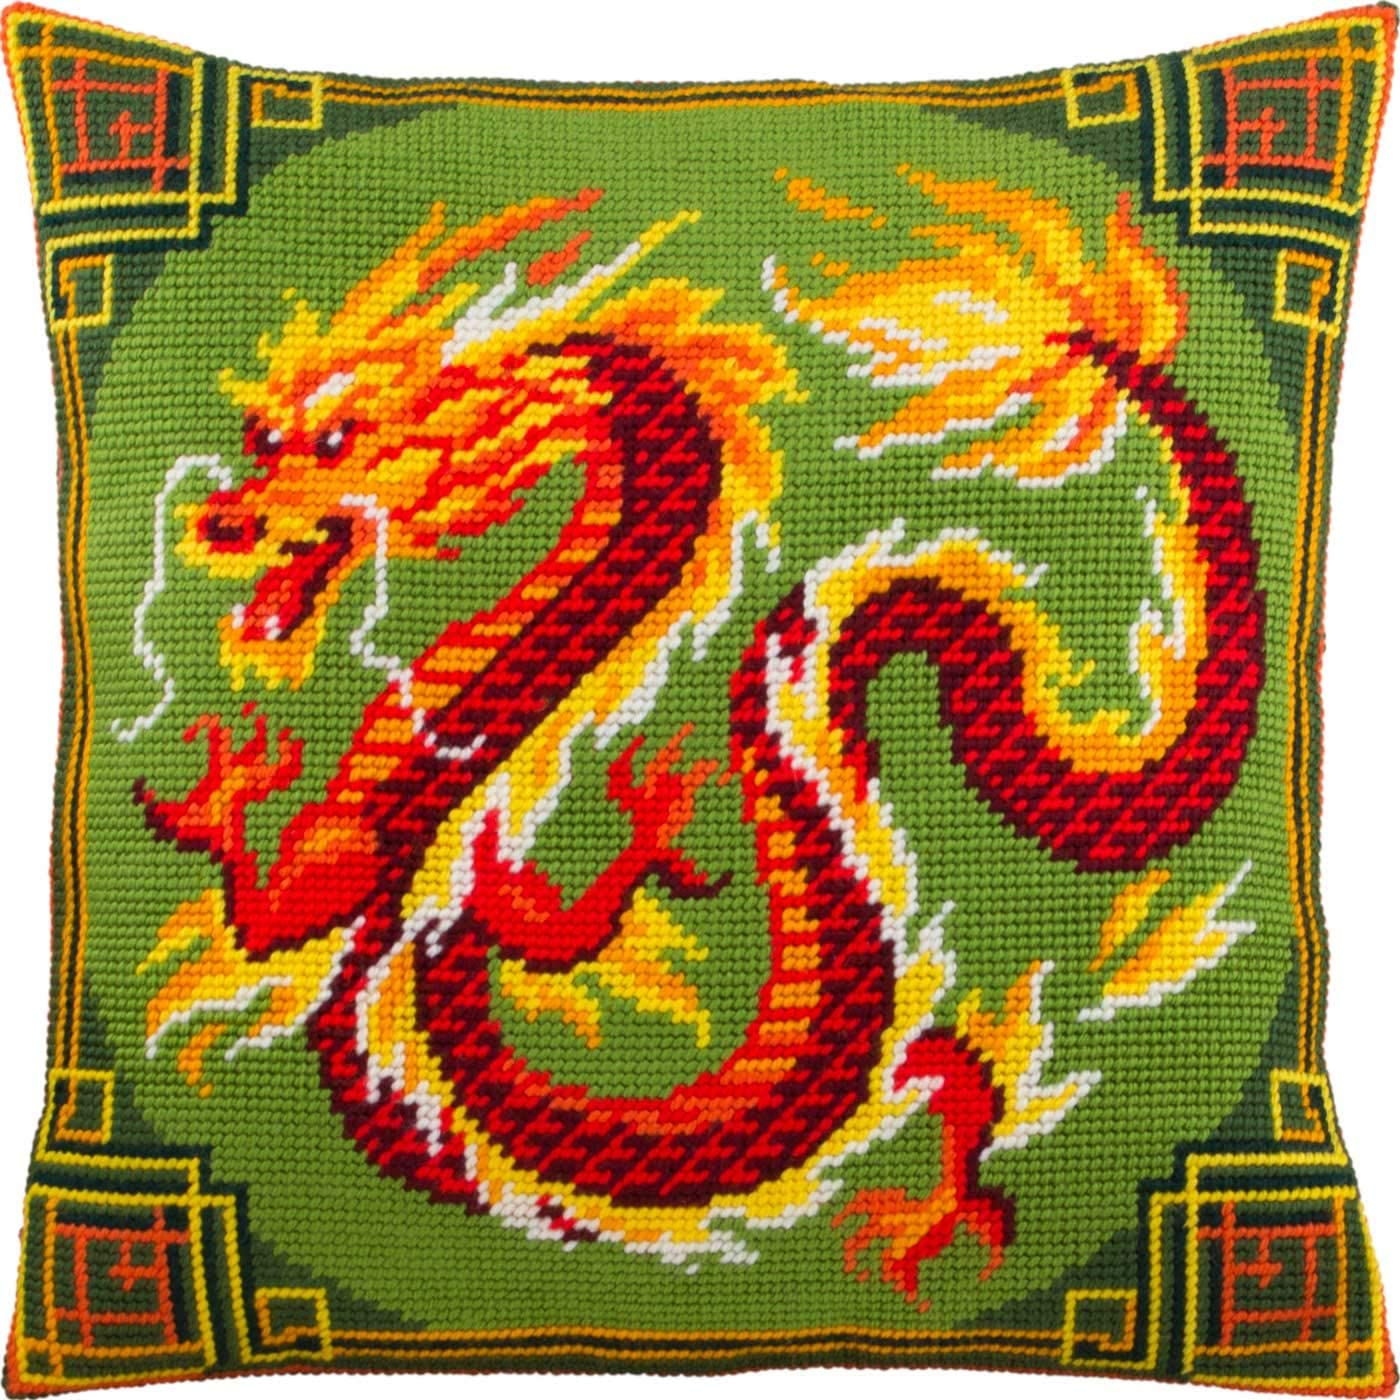 Chinese Dragon. Needlepoint Kit. Throw Pillow P 16×16 Quantity limited New item Inches.